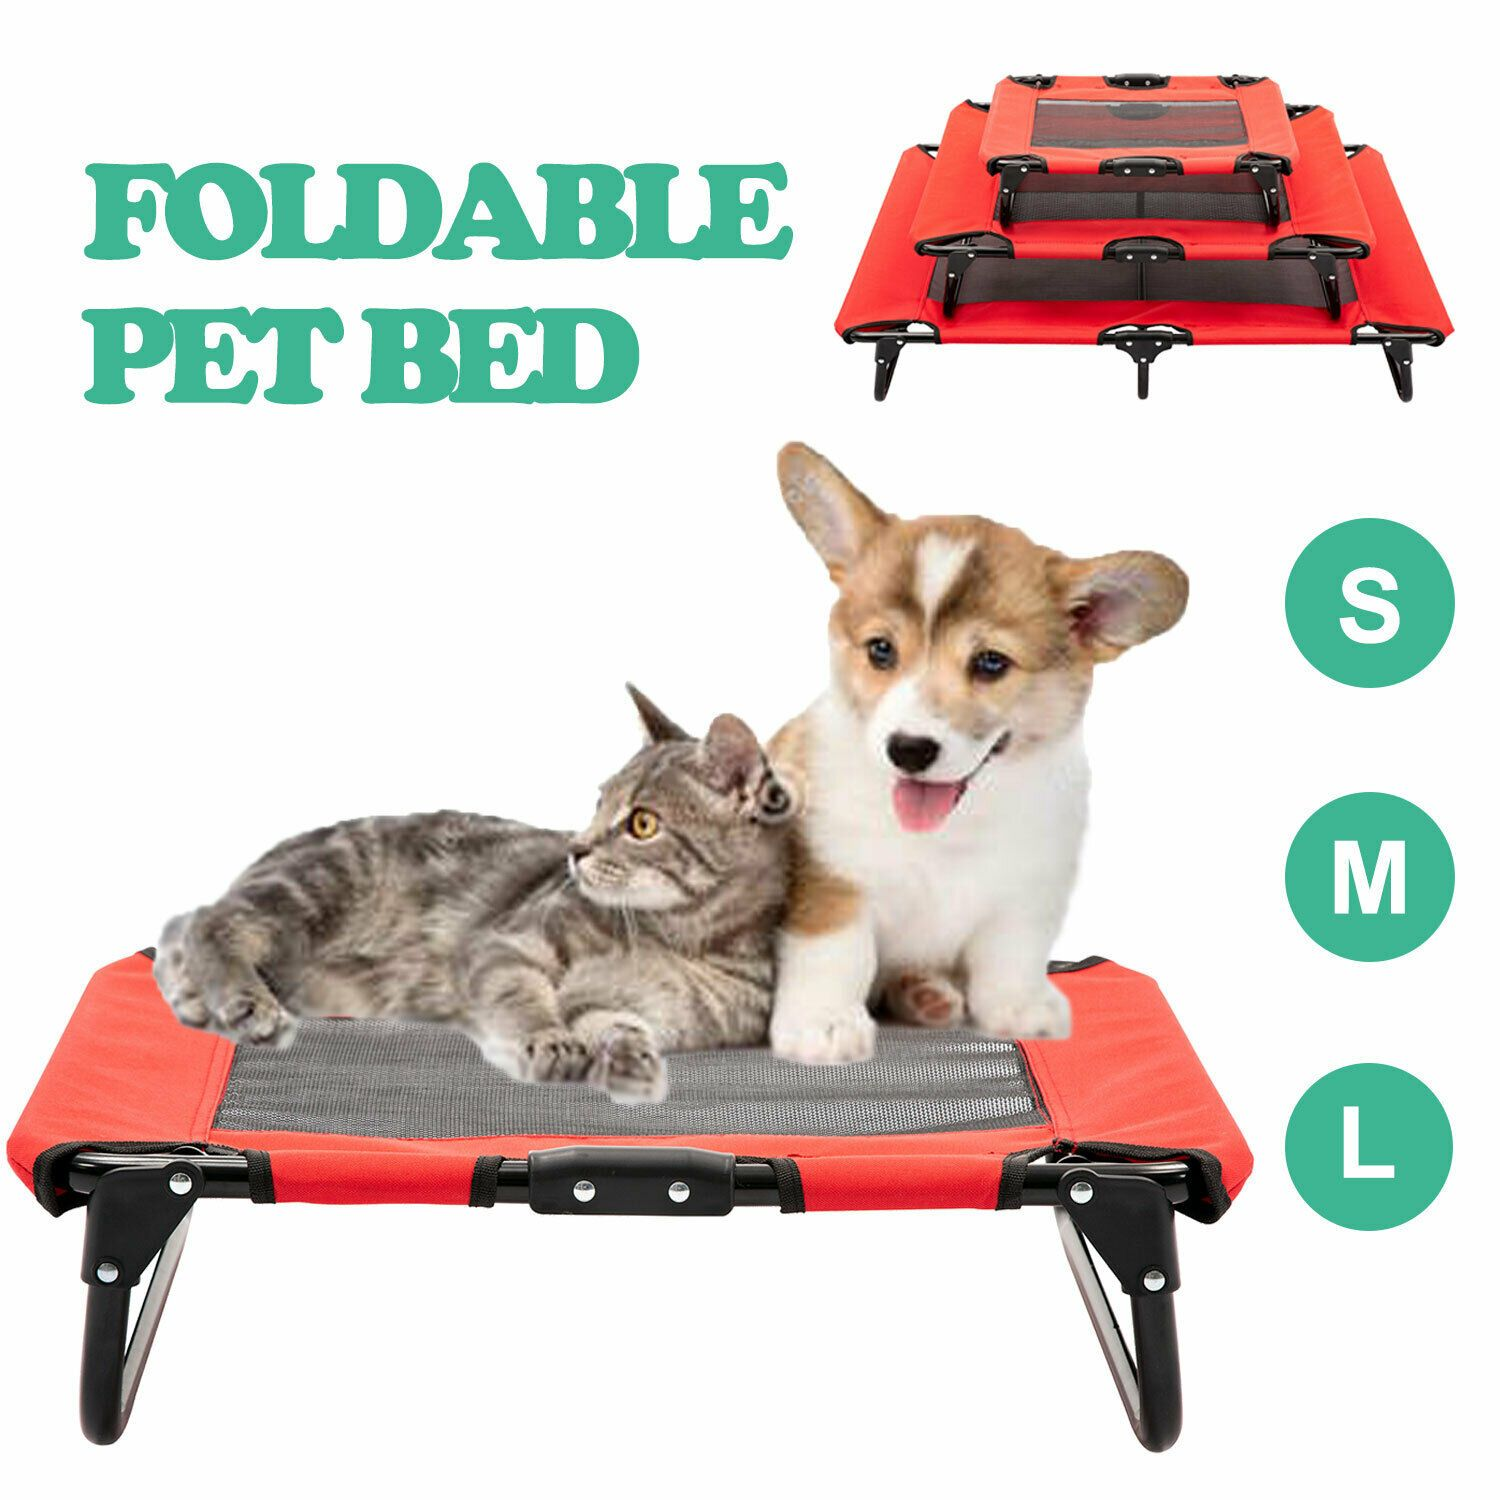 Buy Elevated Pet Bed Dog Cat Cot Portable Raised Cooling Camping